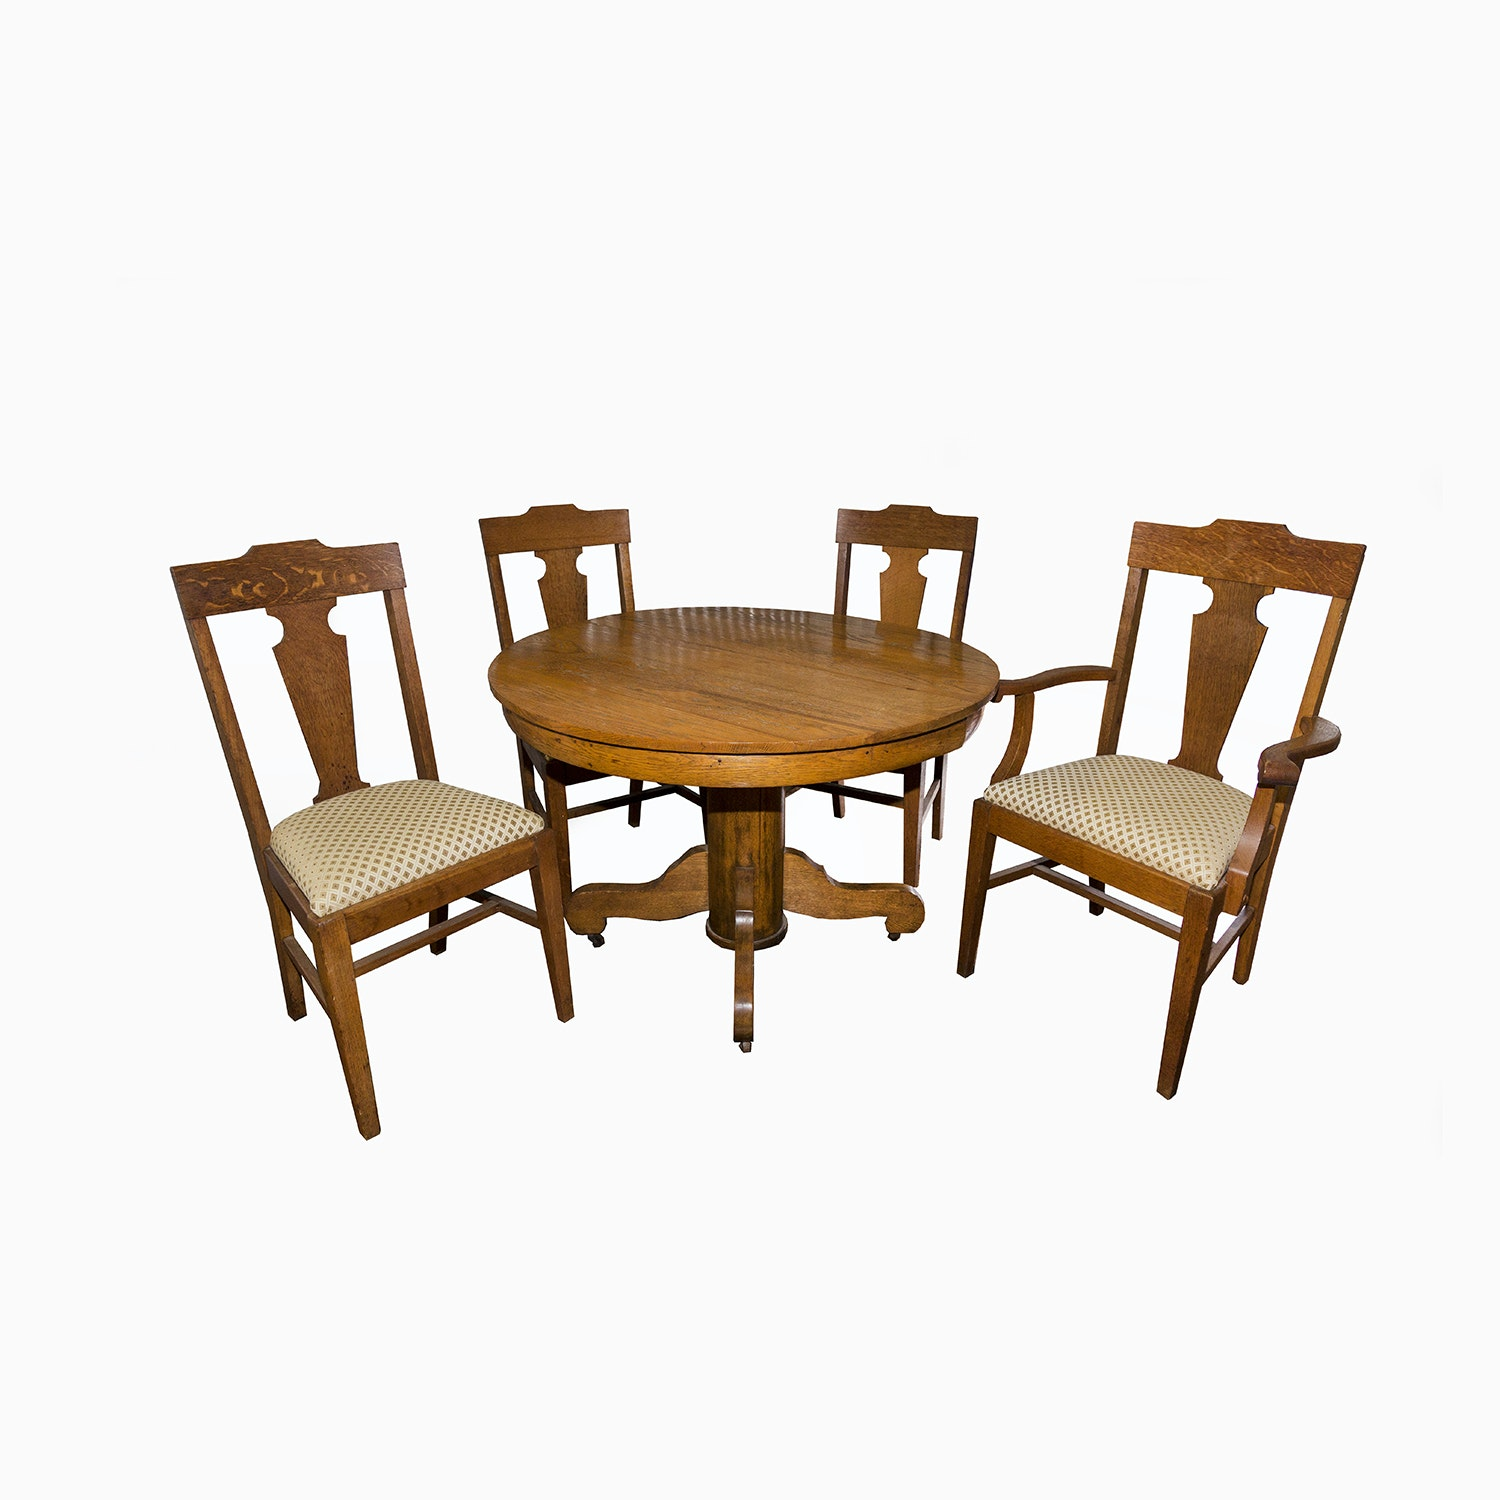 Antique Oak Pedestal Dining Table with Chairs